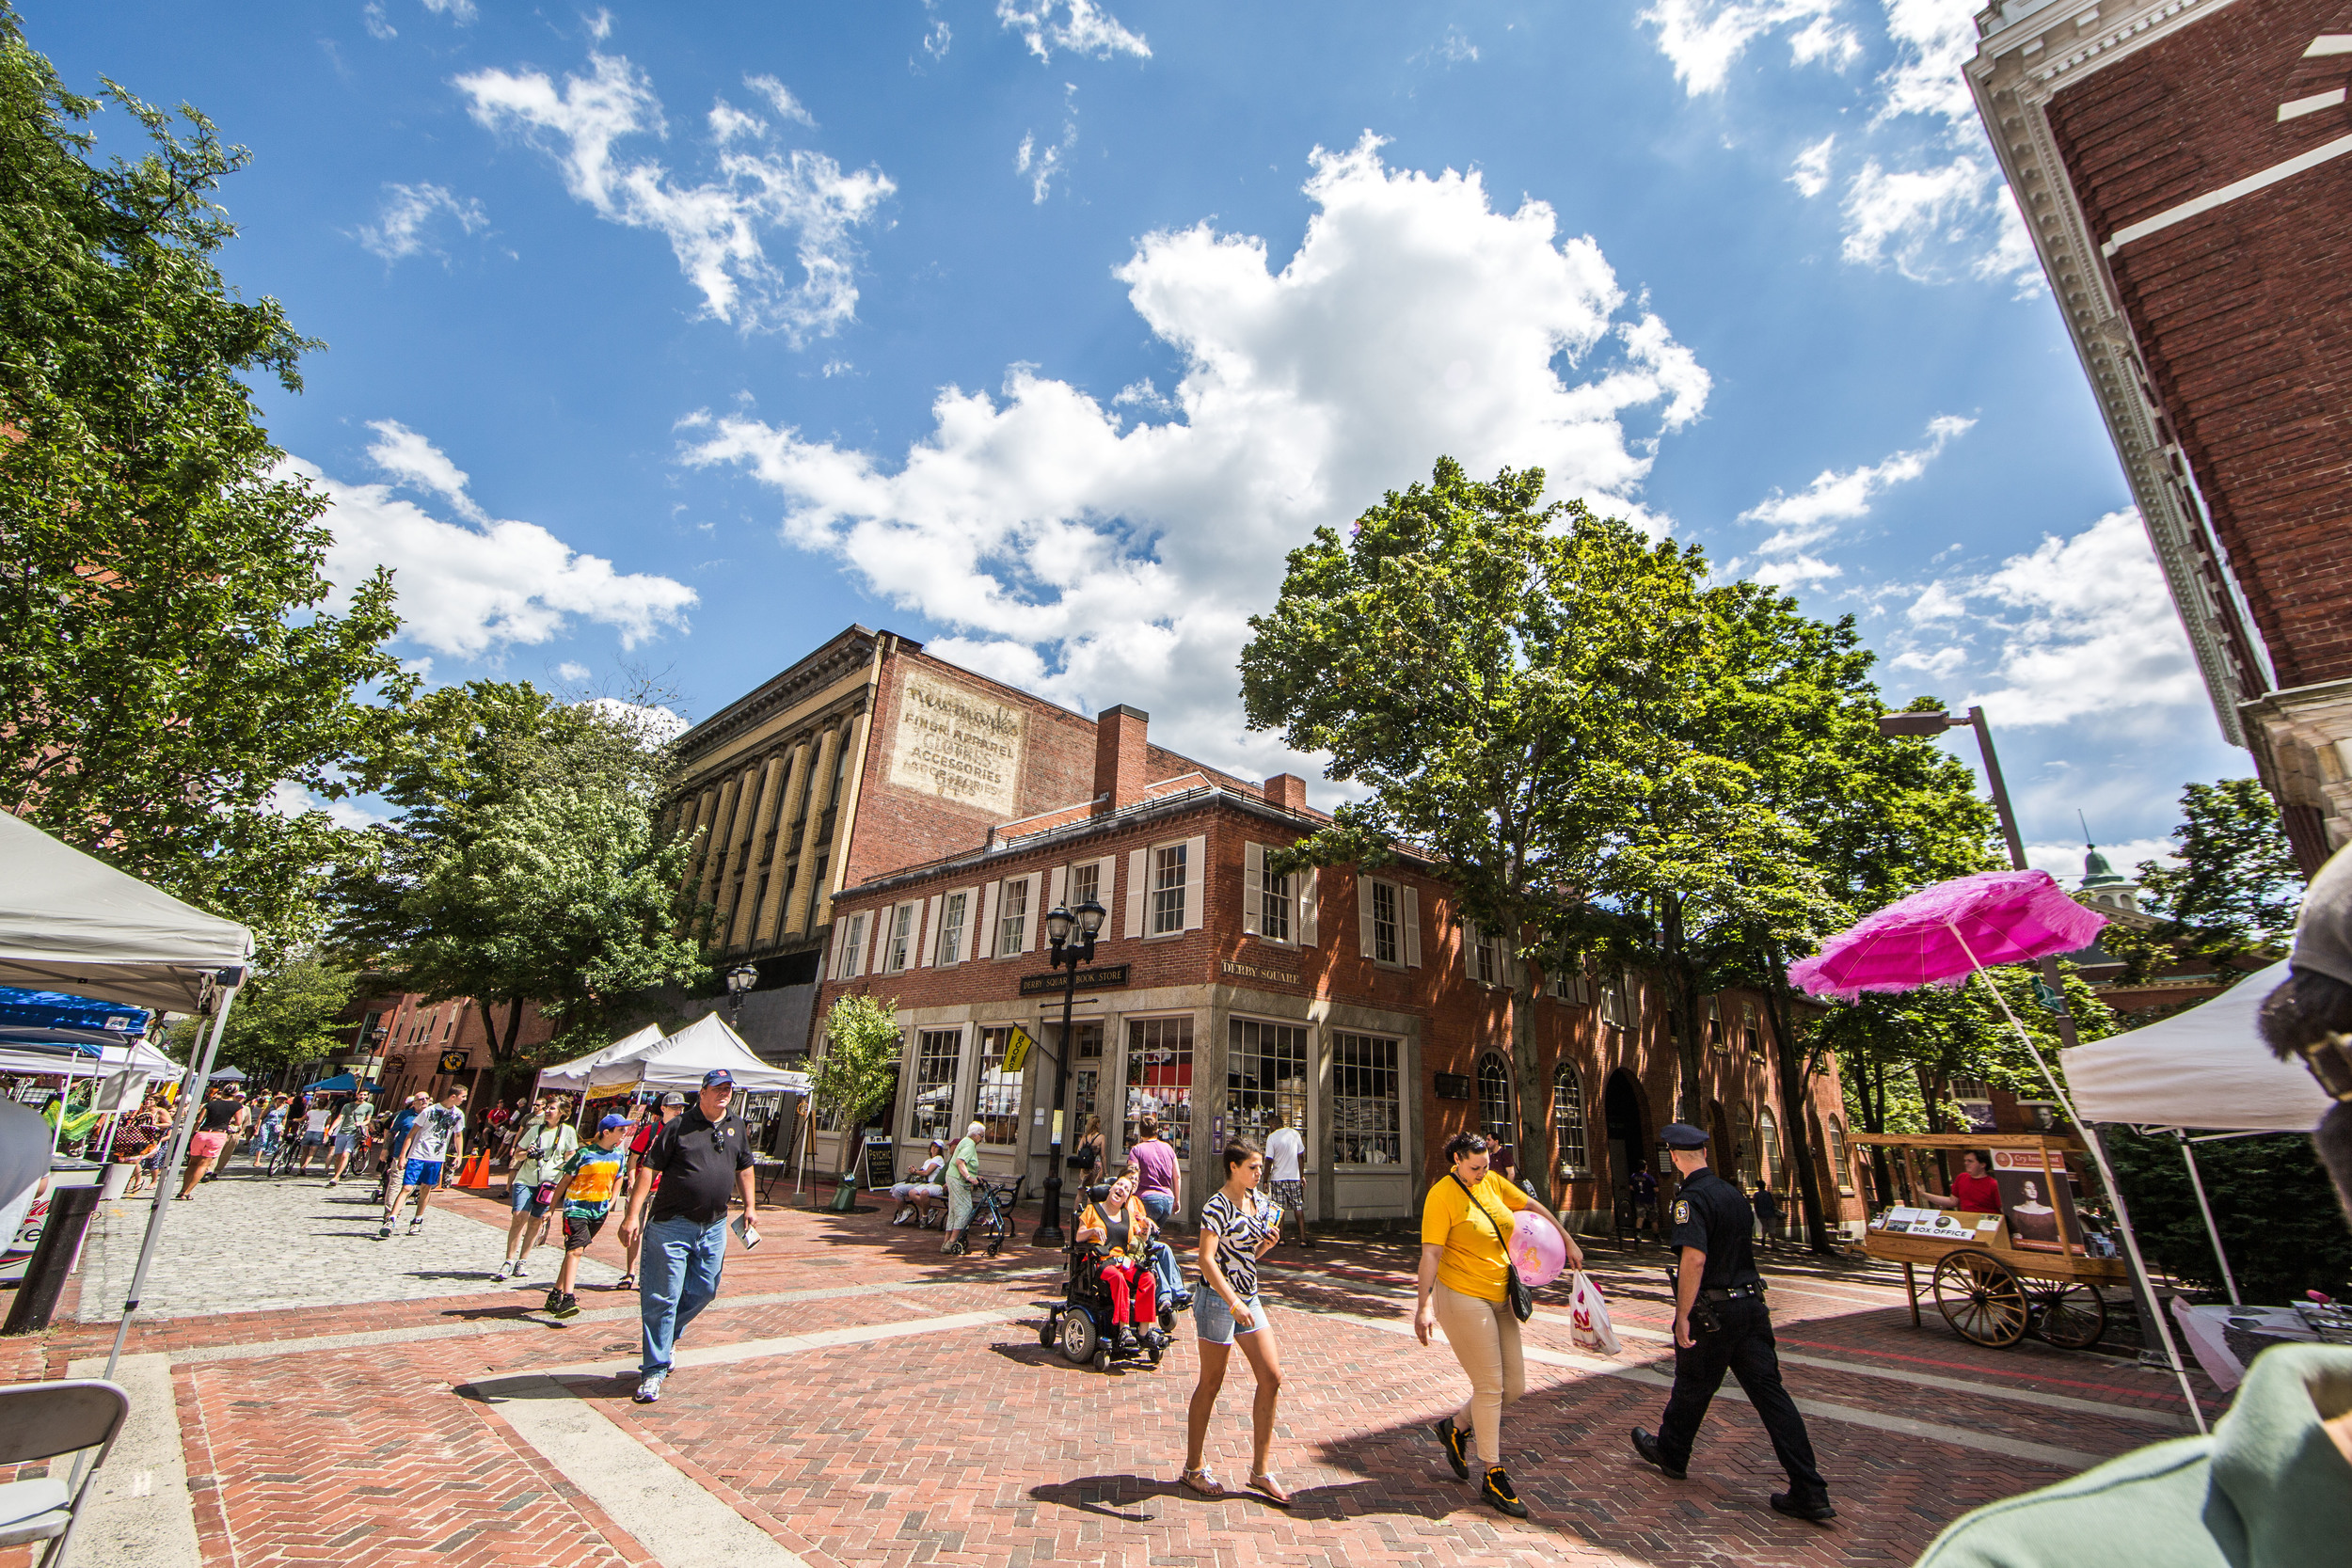 Pedestrian Mall during the Essex Street Street Fair